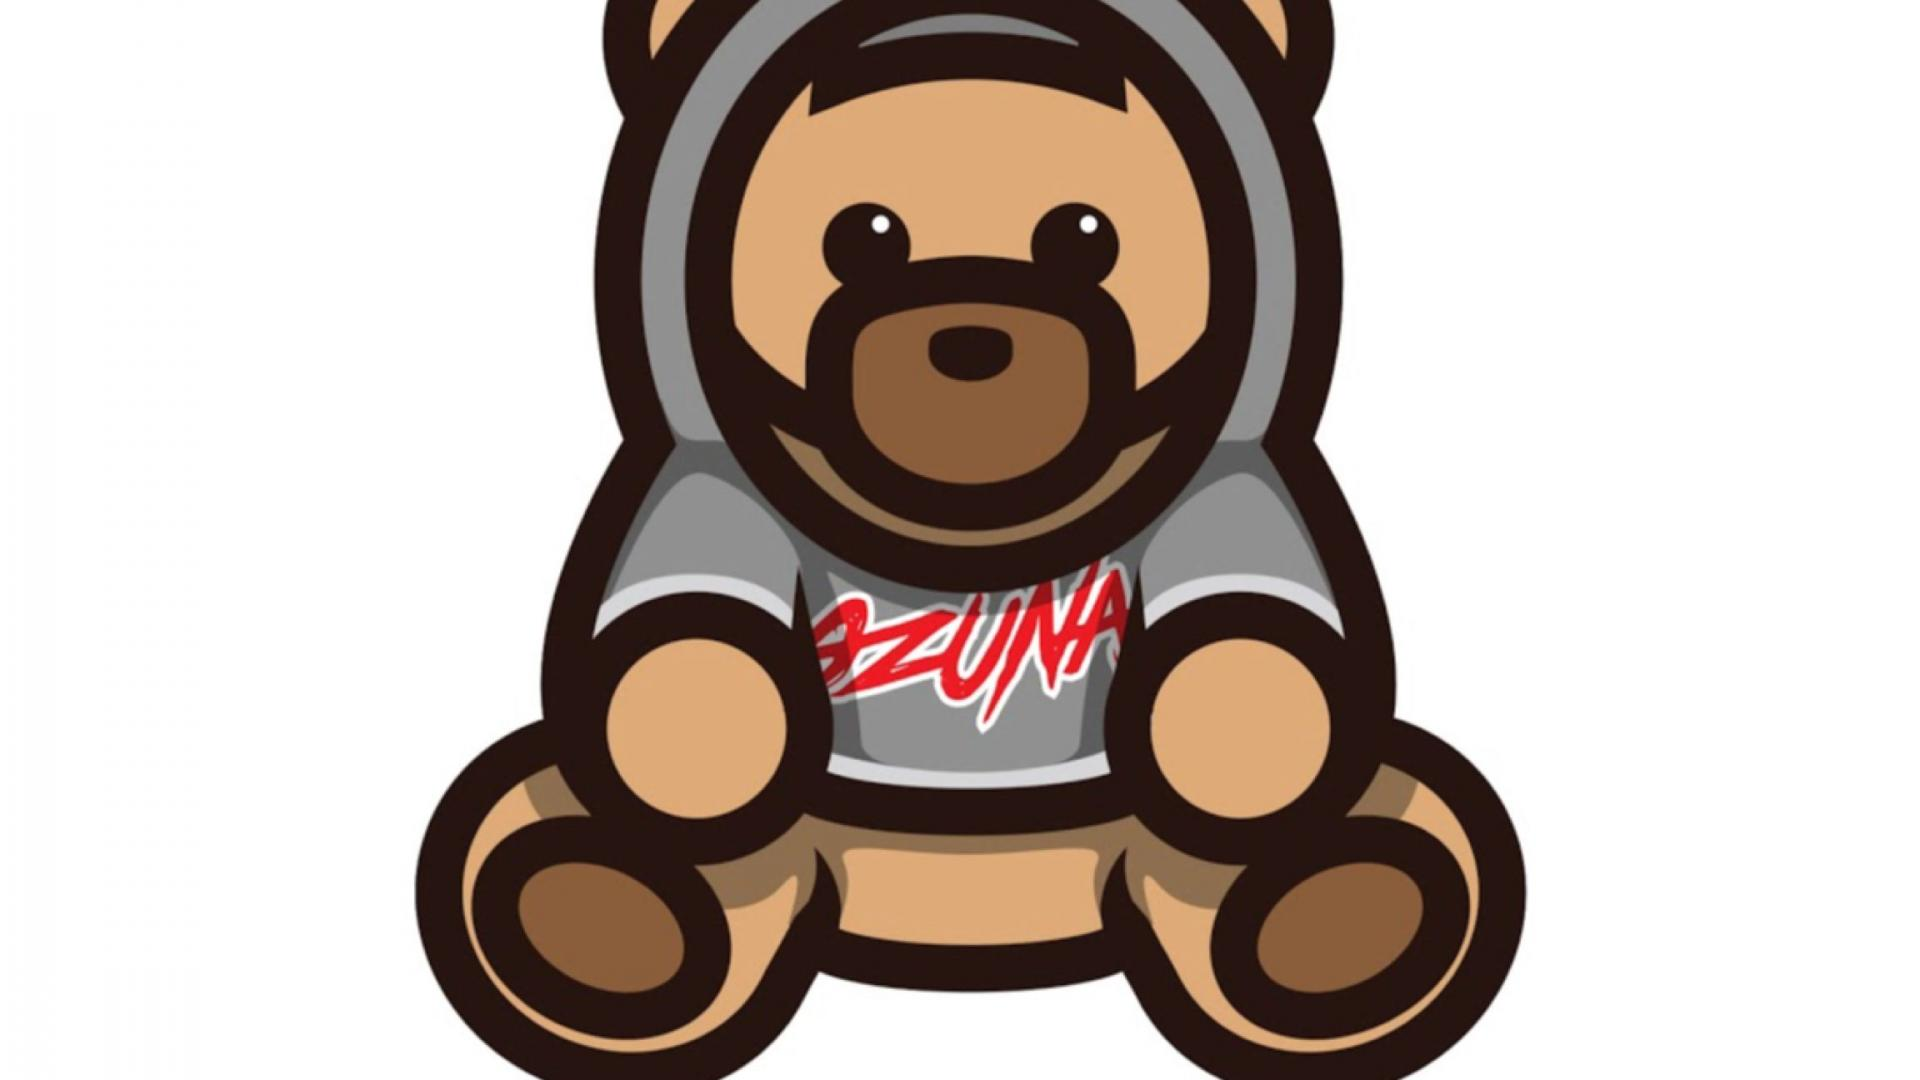 Ozuna Bear Wallpapers Wallpaper Cave